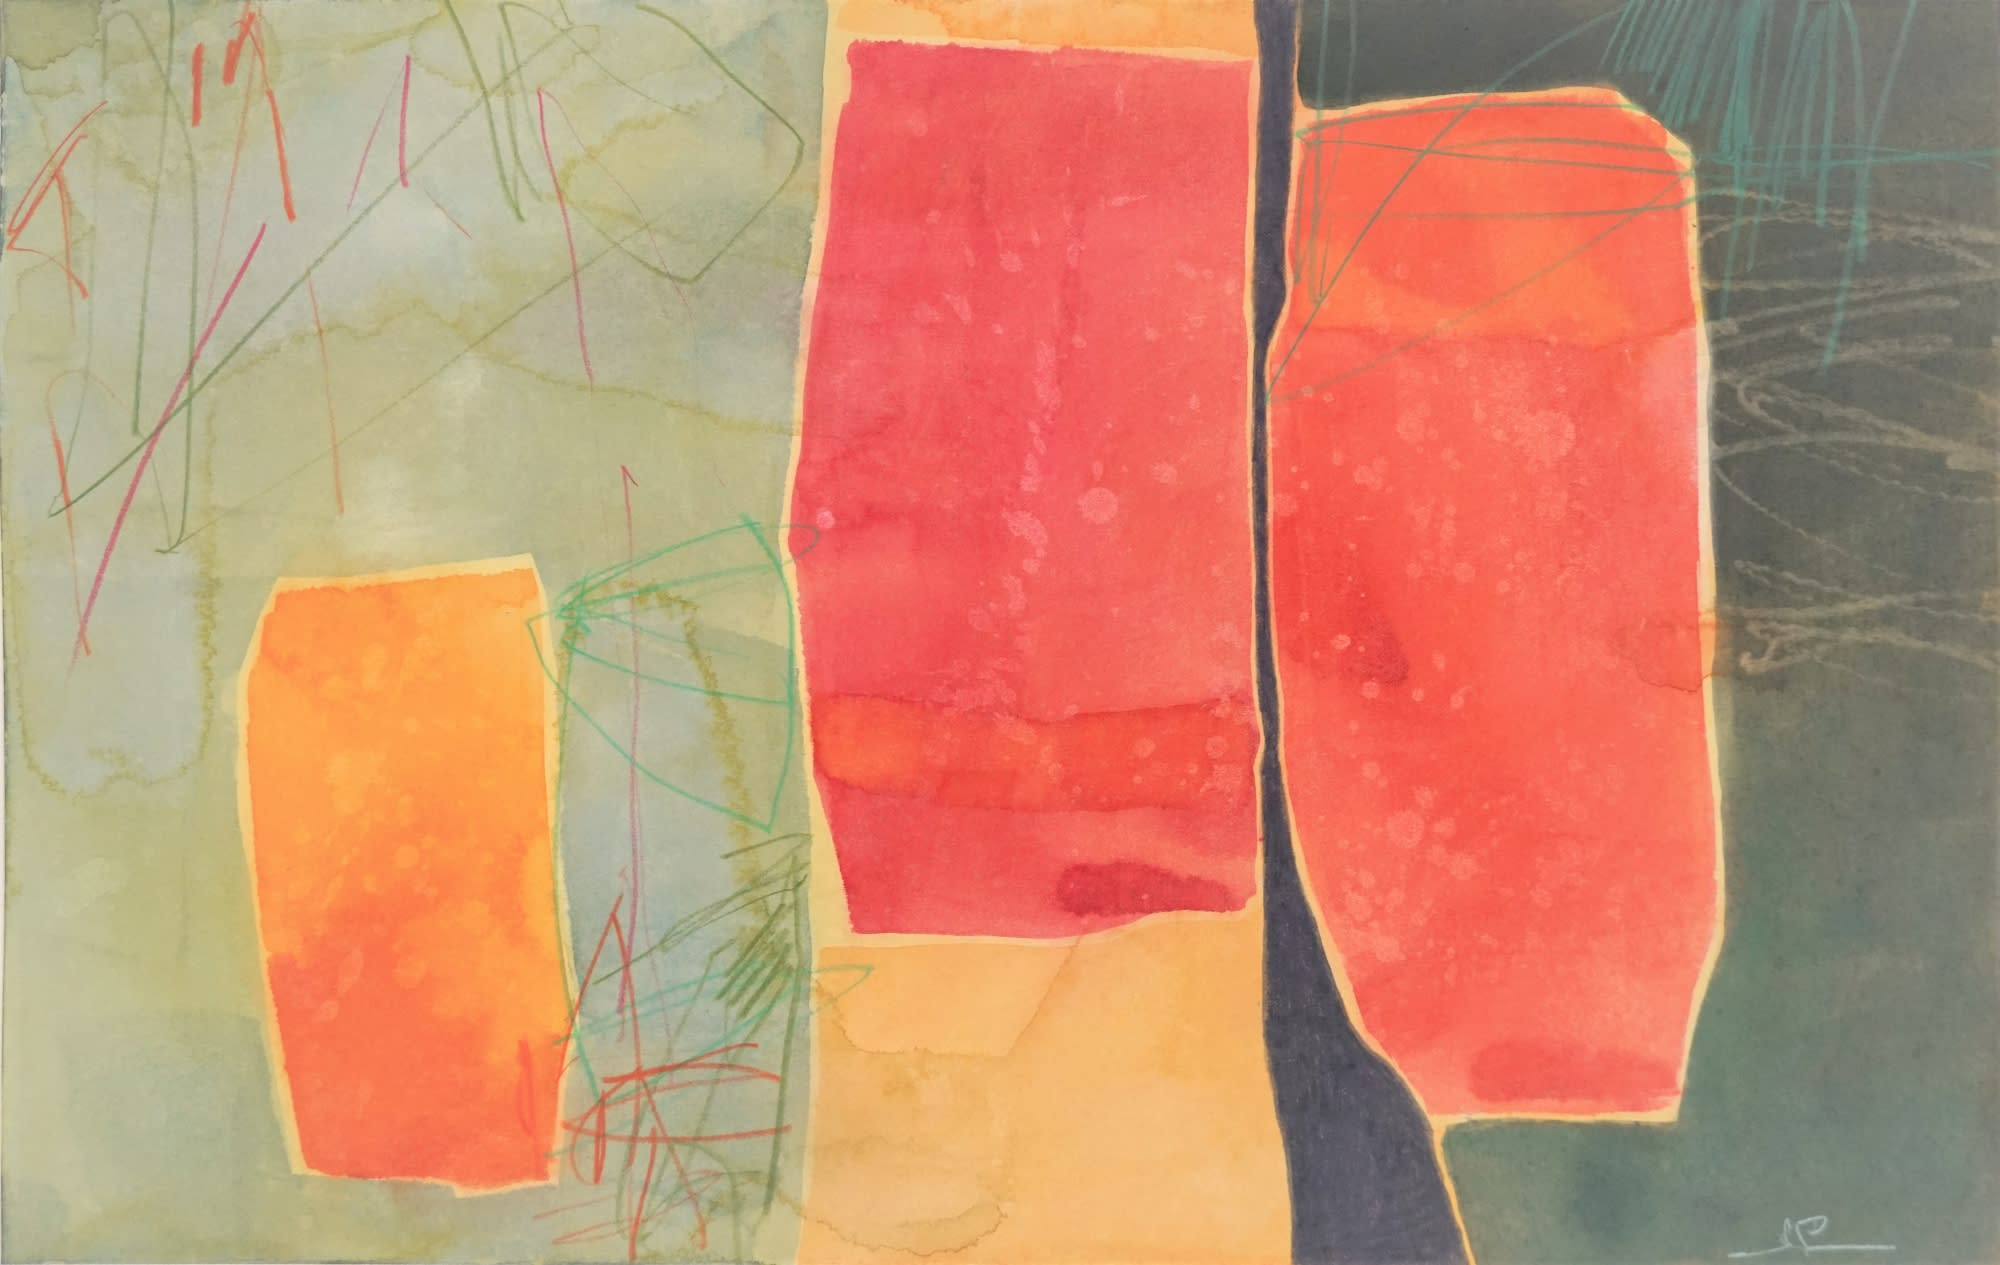 'Magna Carta' by Jacques Pilon at Gallery 133